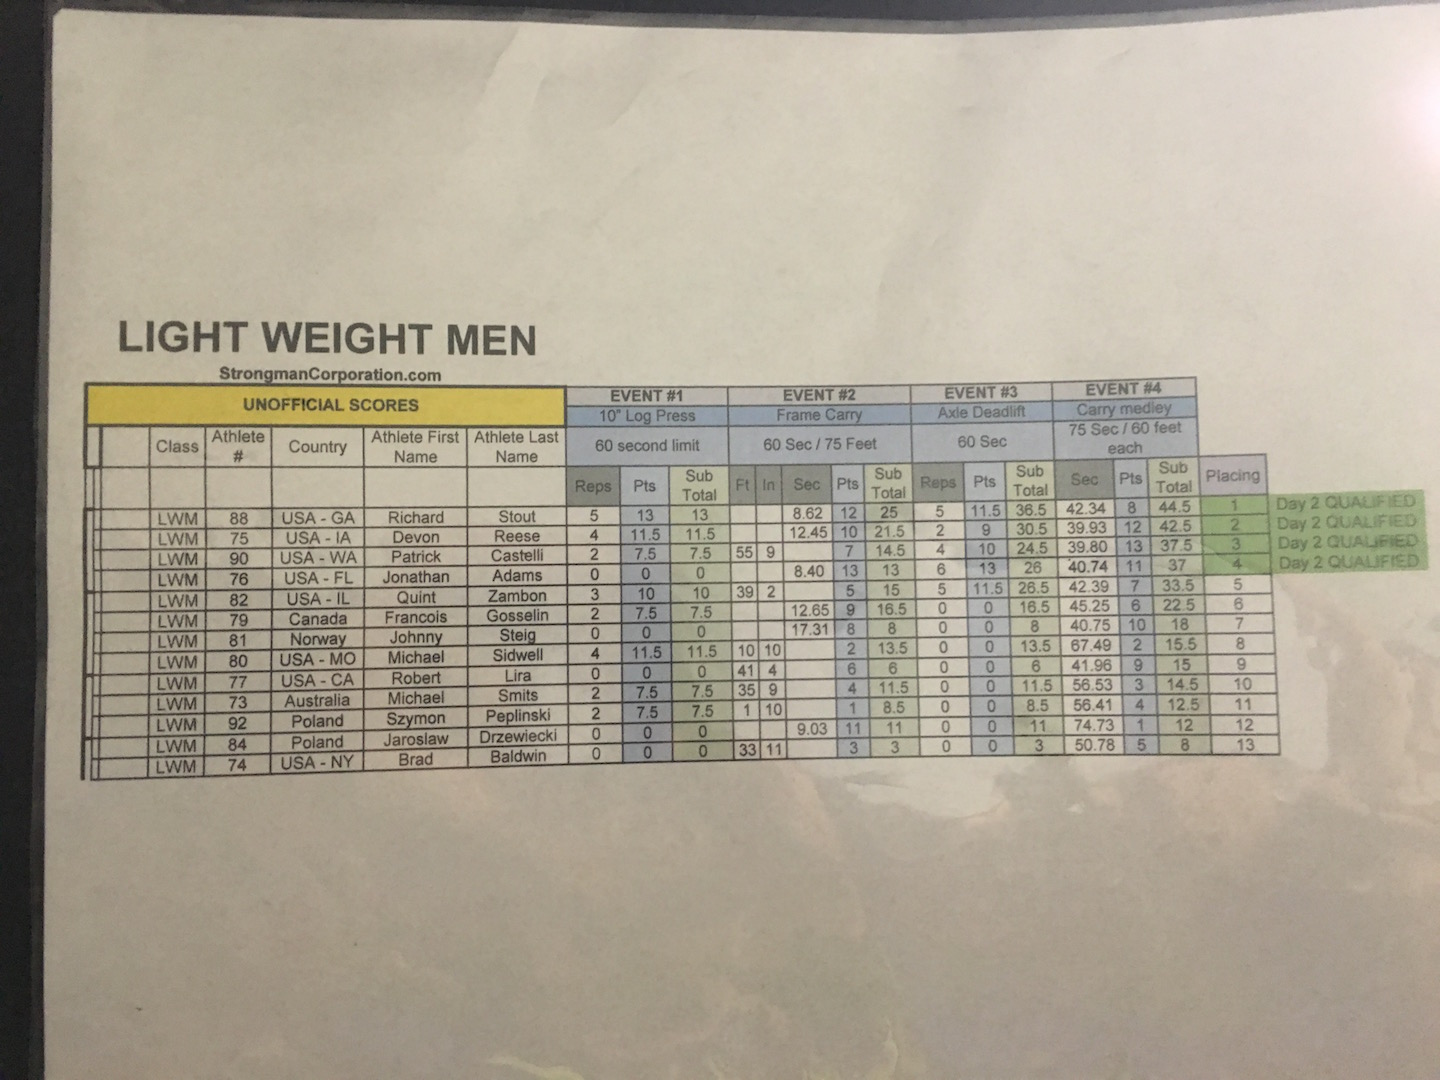 Lightweight Men day 1